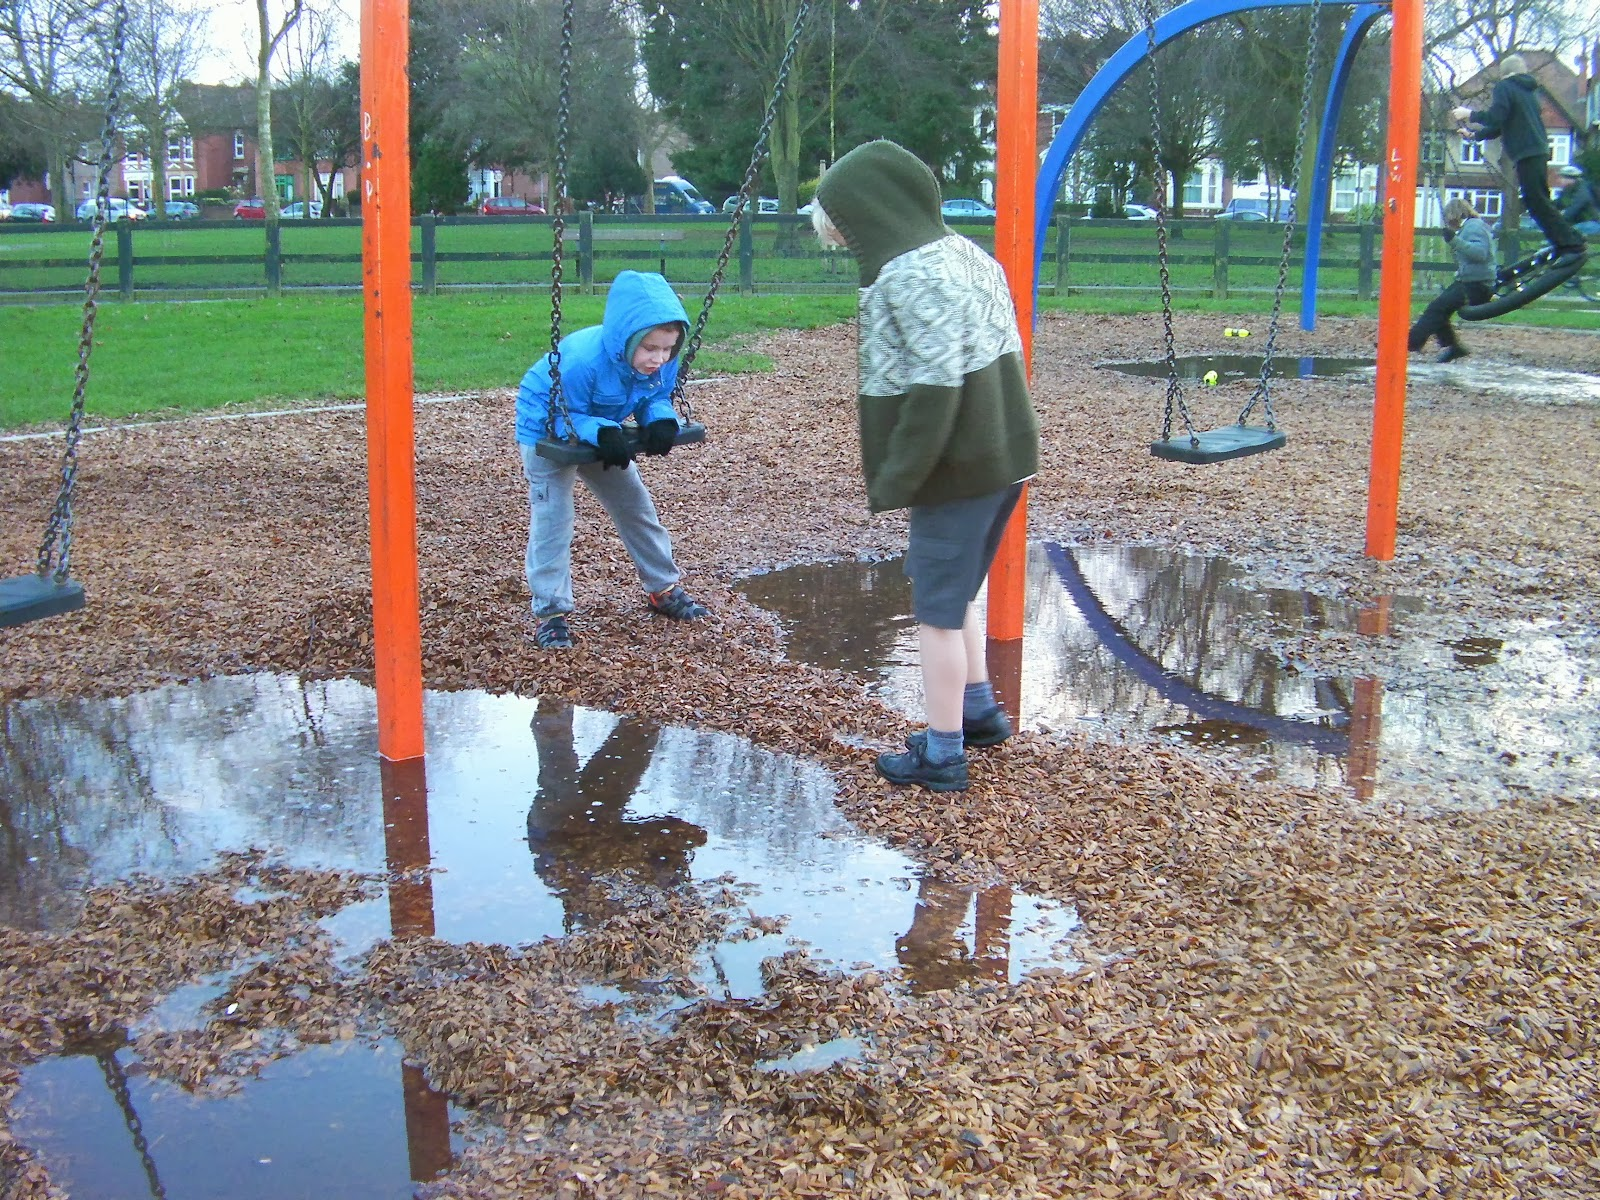 milton park portsmouth orange swings